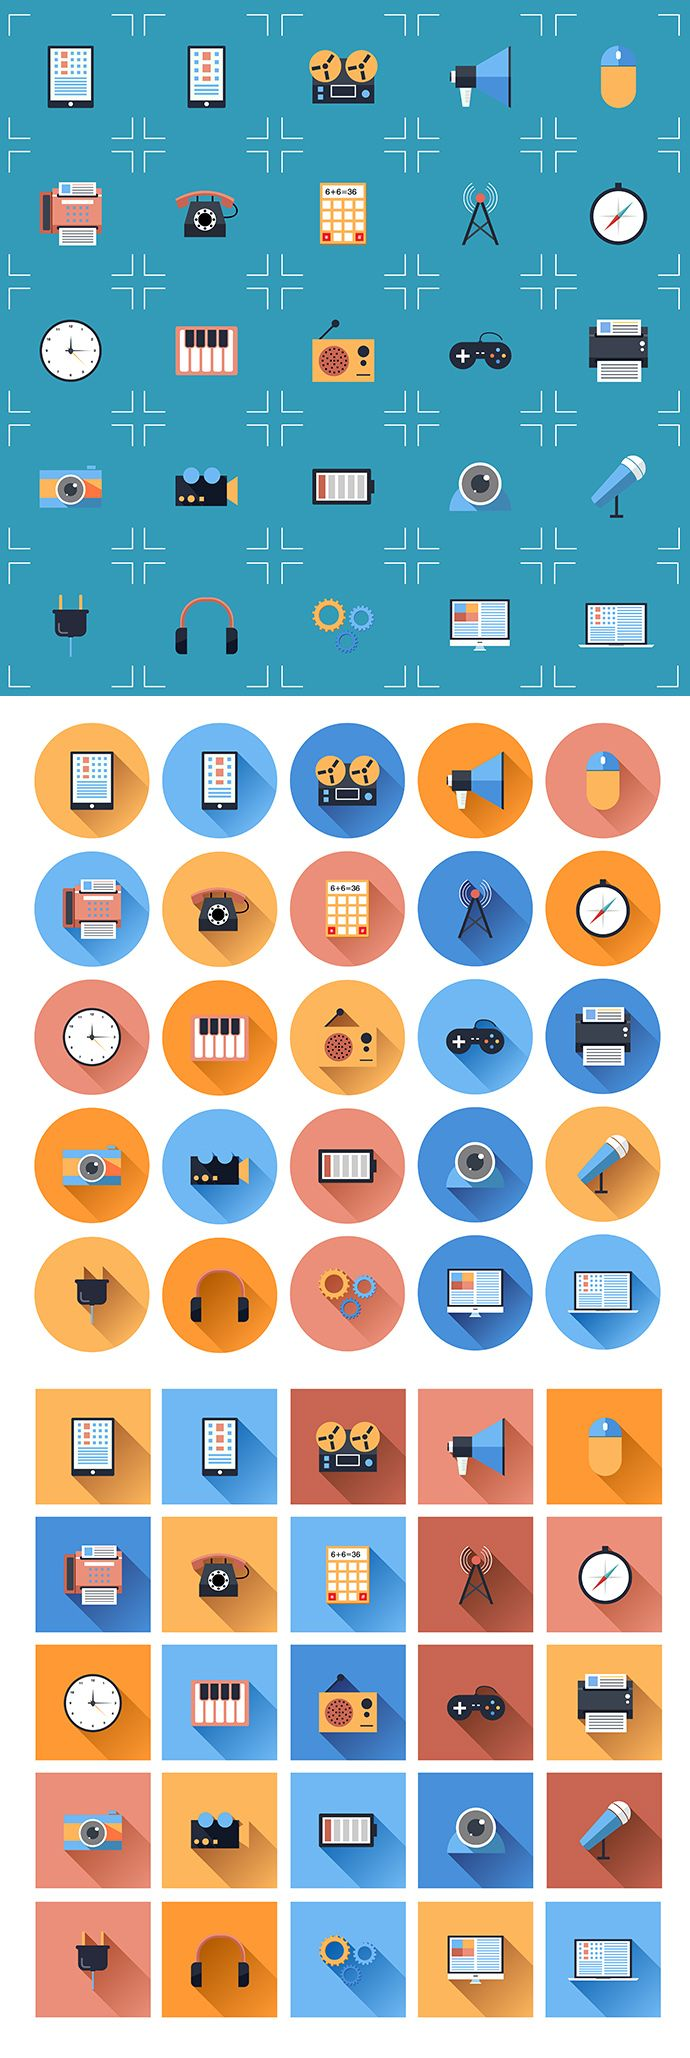 Free Flat Icon Set 1 | www.greatvectors.com